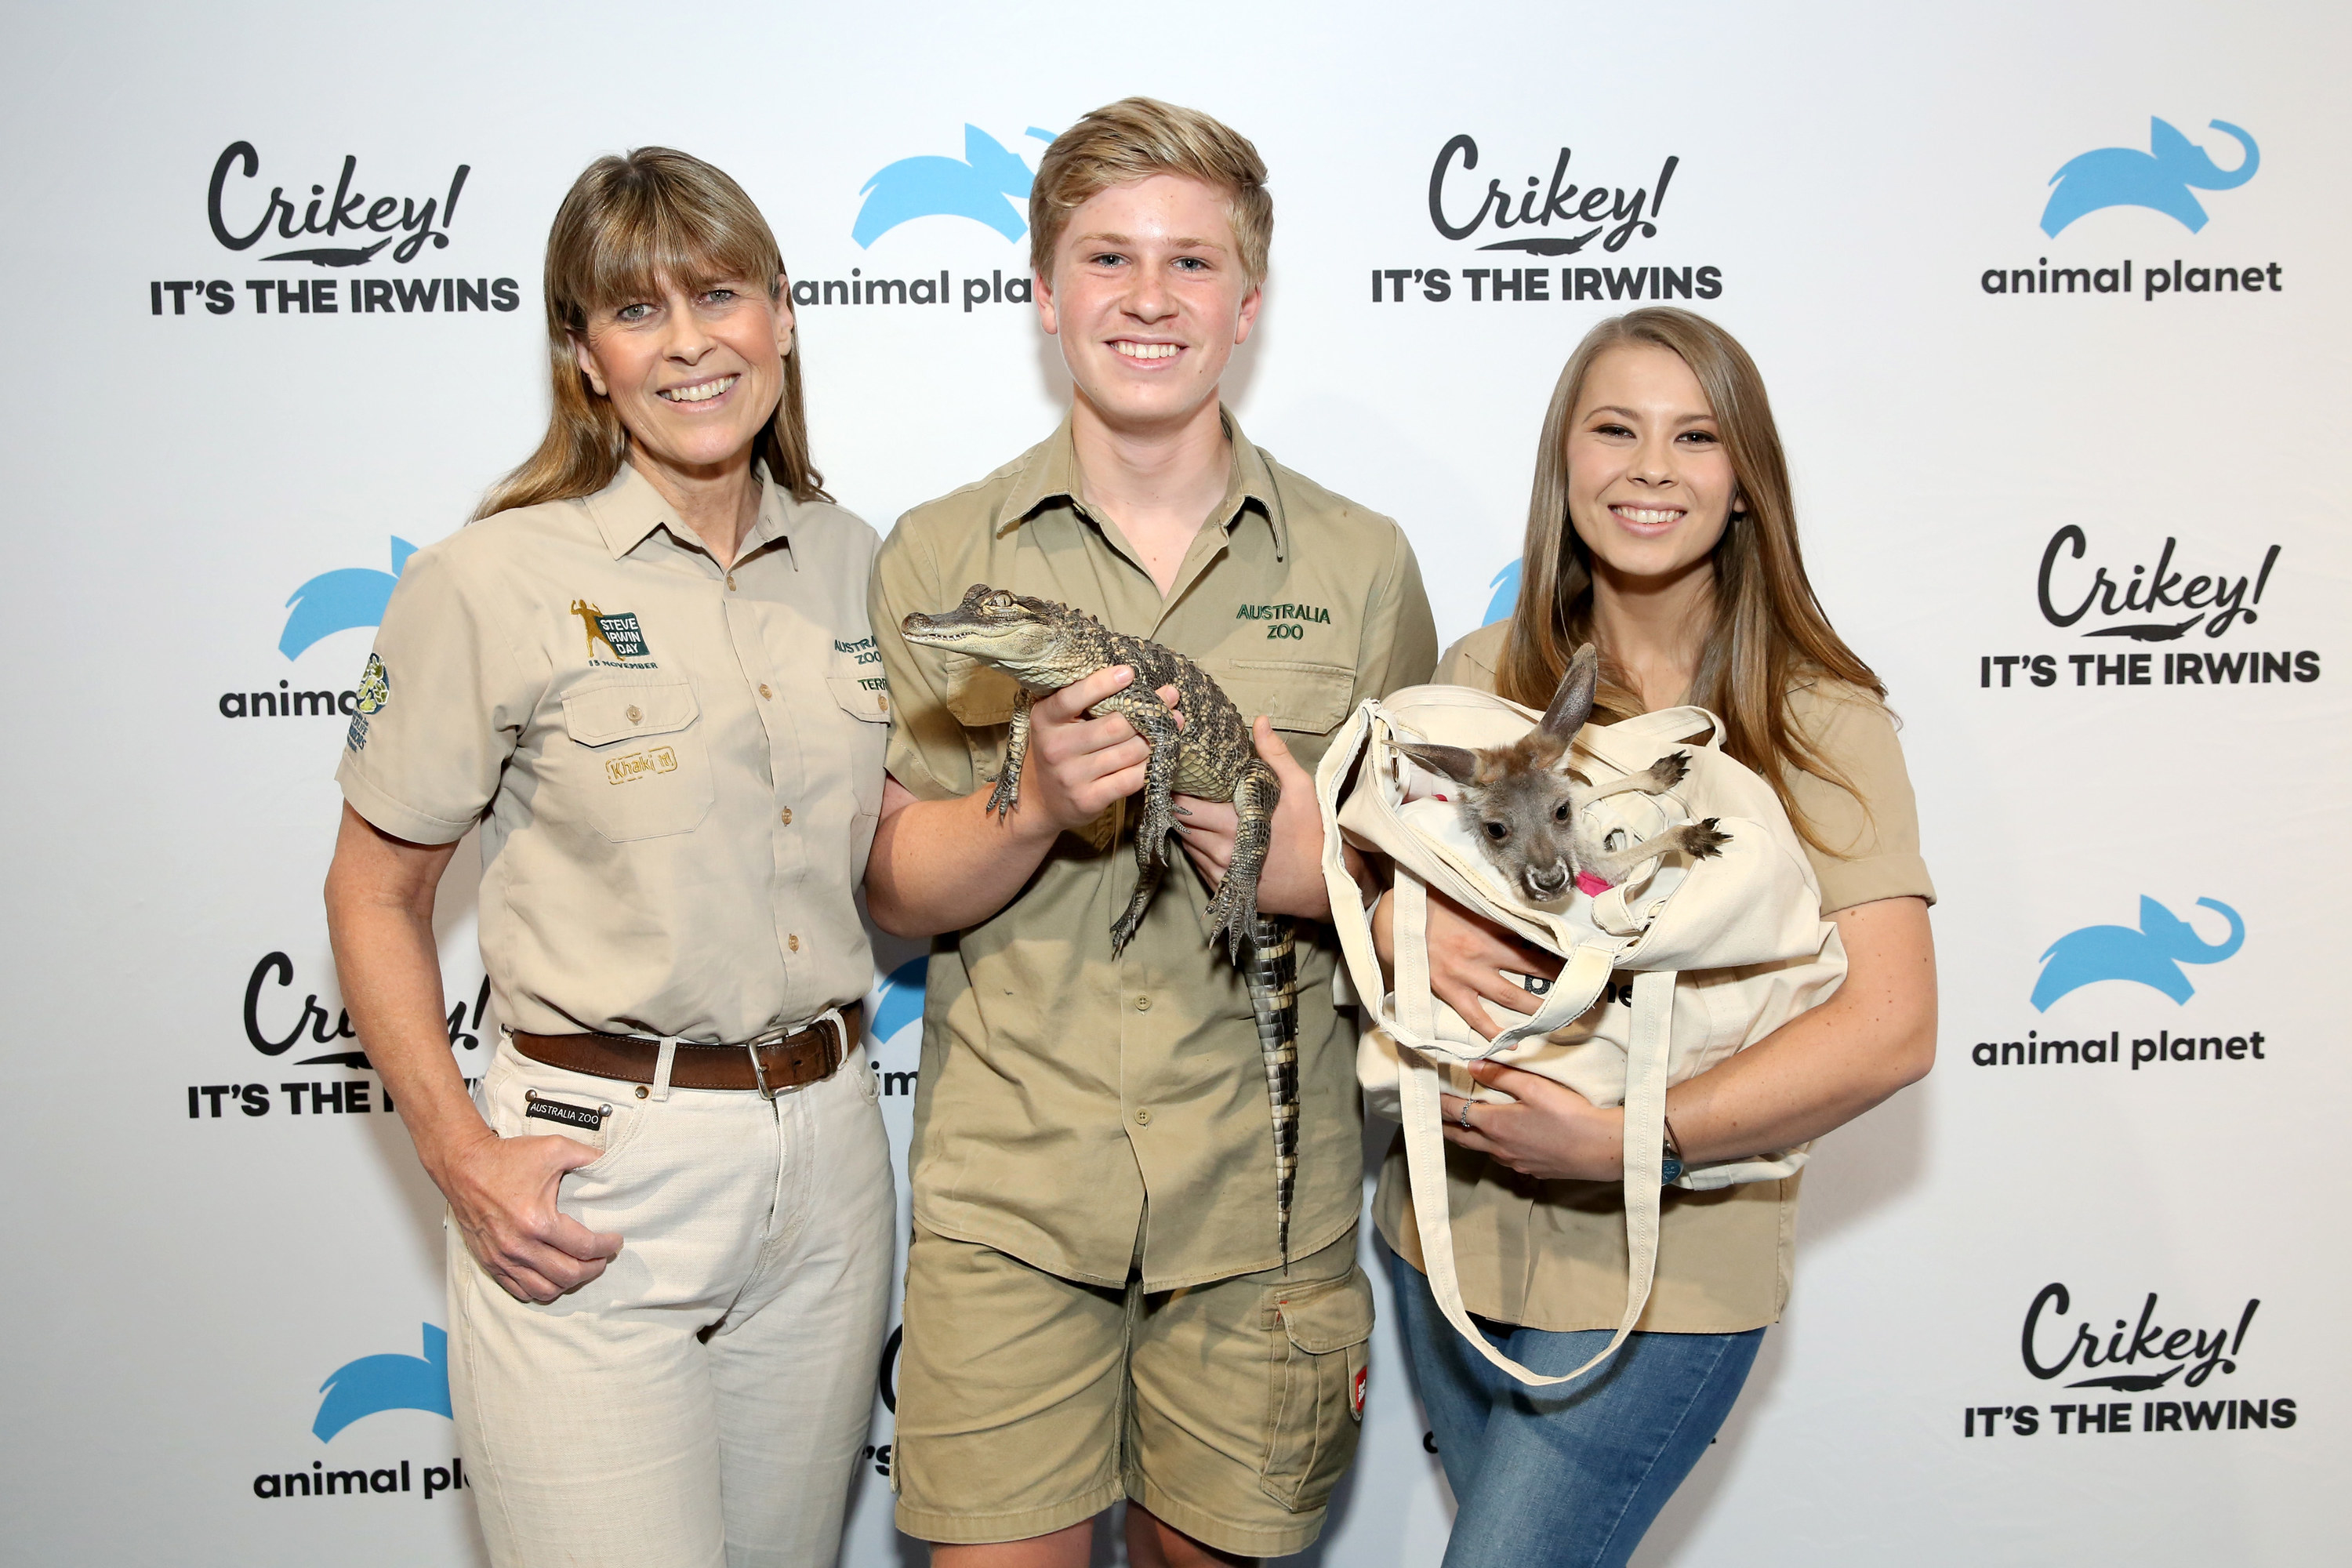 The Irwin family promoting Crikey! It's the Irwins